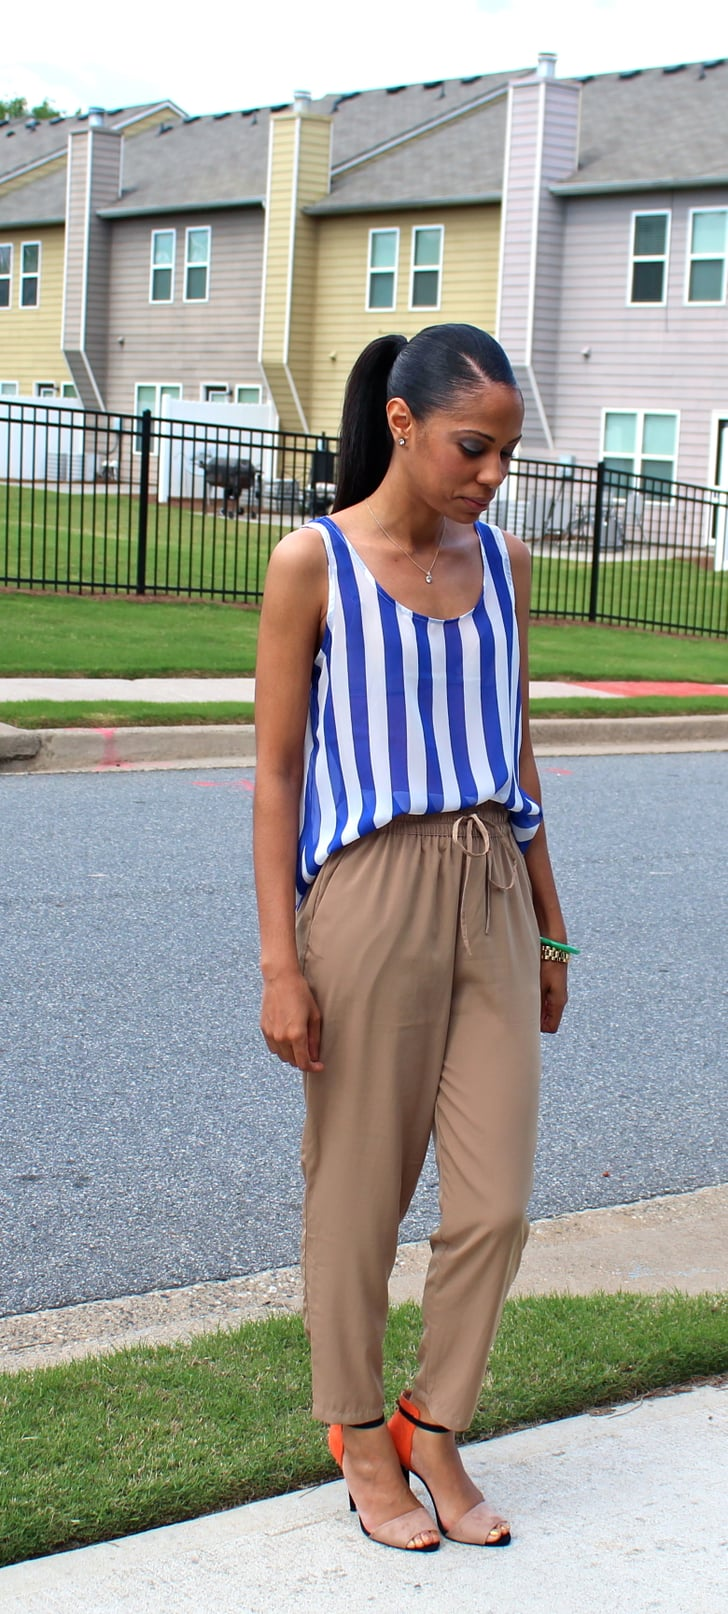 Forever 21 Outfit Under $20